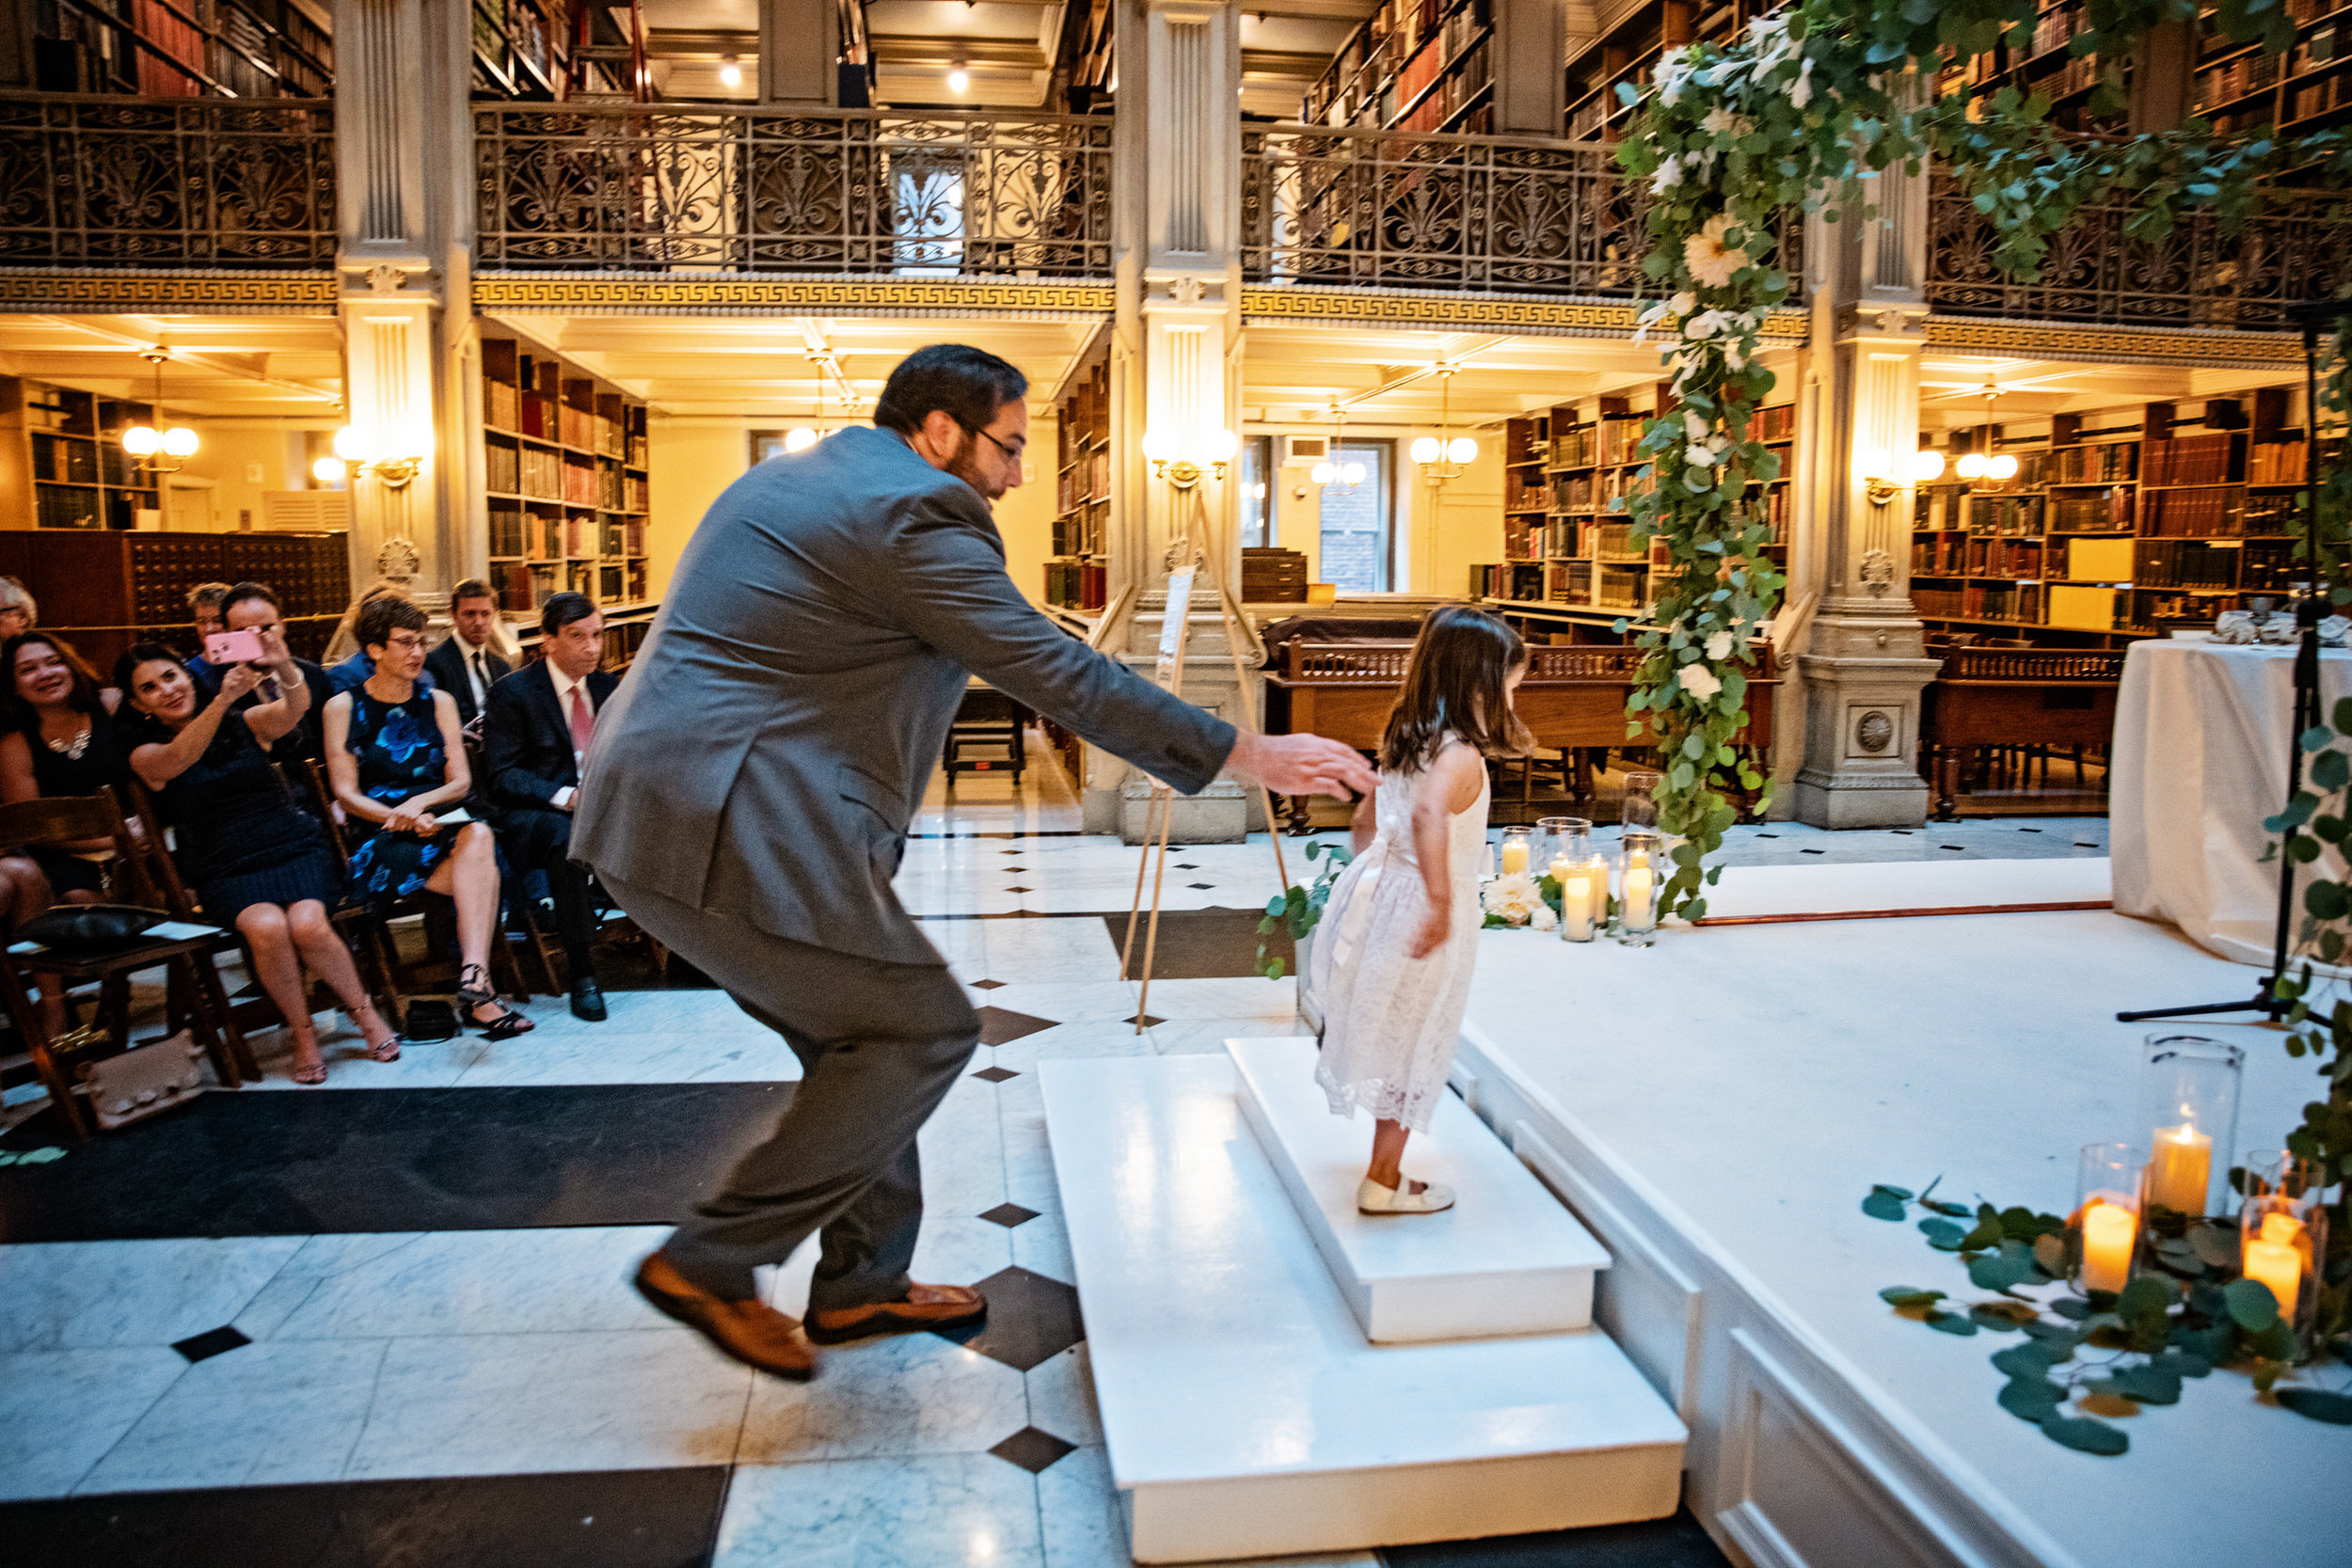 PeabodyLibraryWedding-Paige&Colin-Ceremony-60.jpg